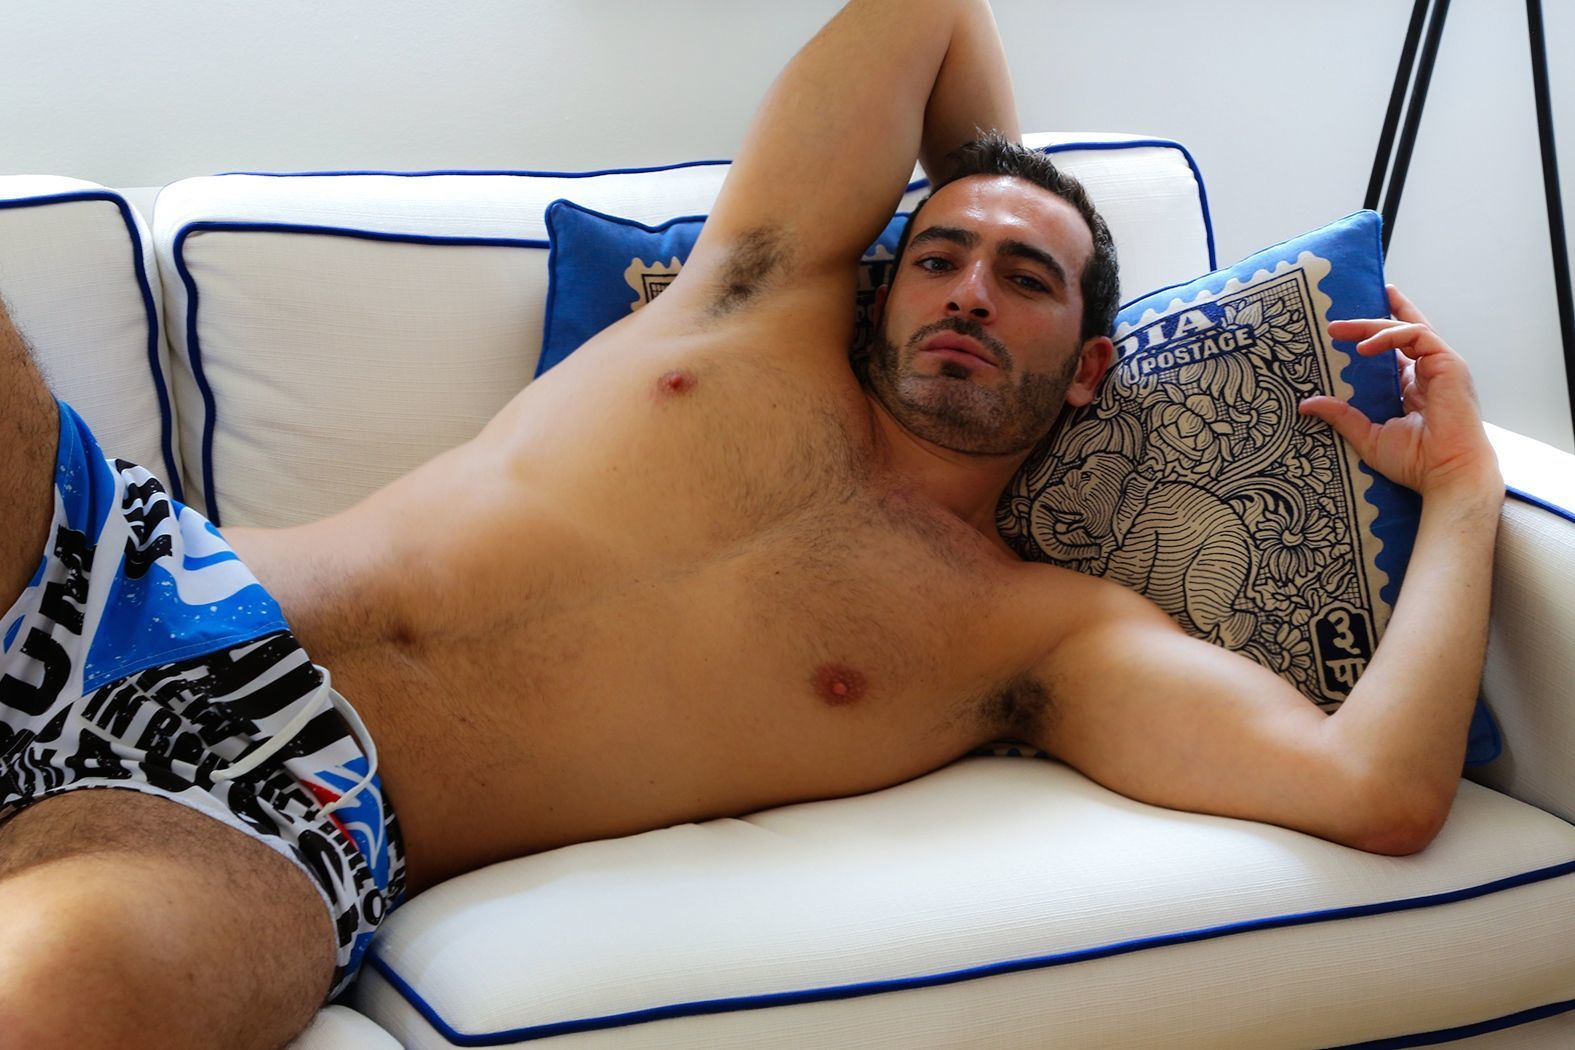 french gay video escorts bordeaux